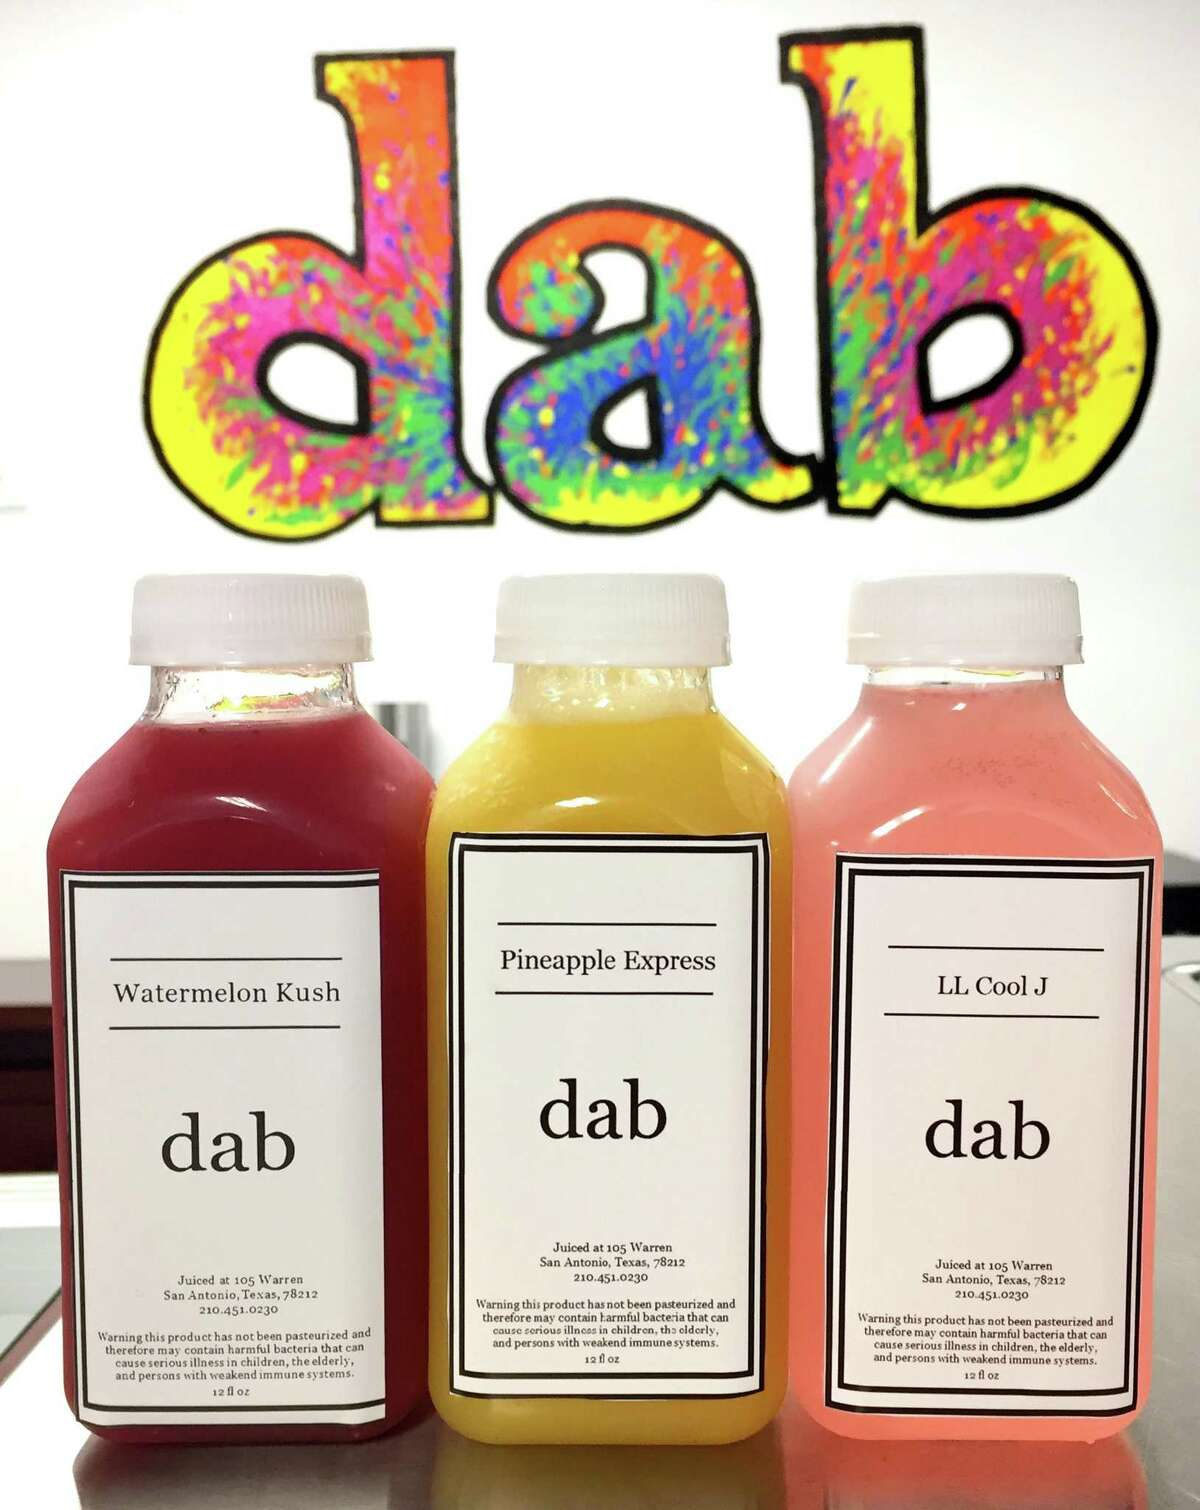 Customers can choose to add CBD oil to any of the fresh juices served at Dab Hemp Cafe.